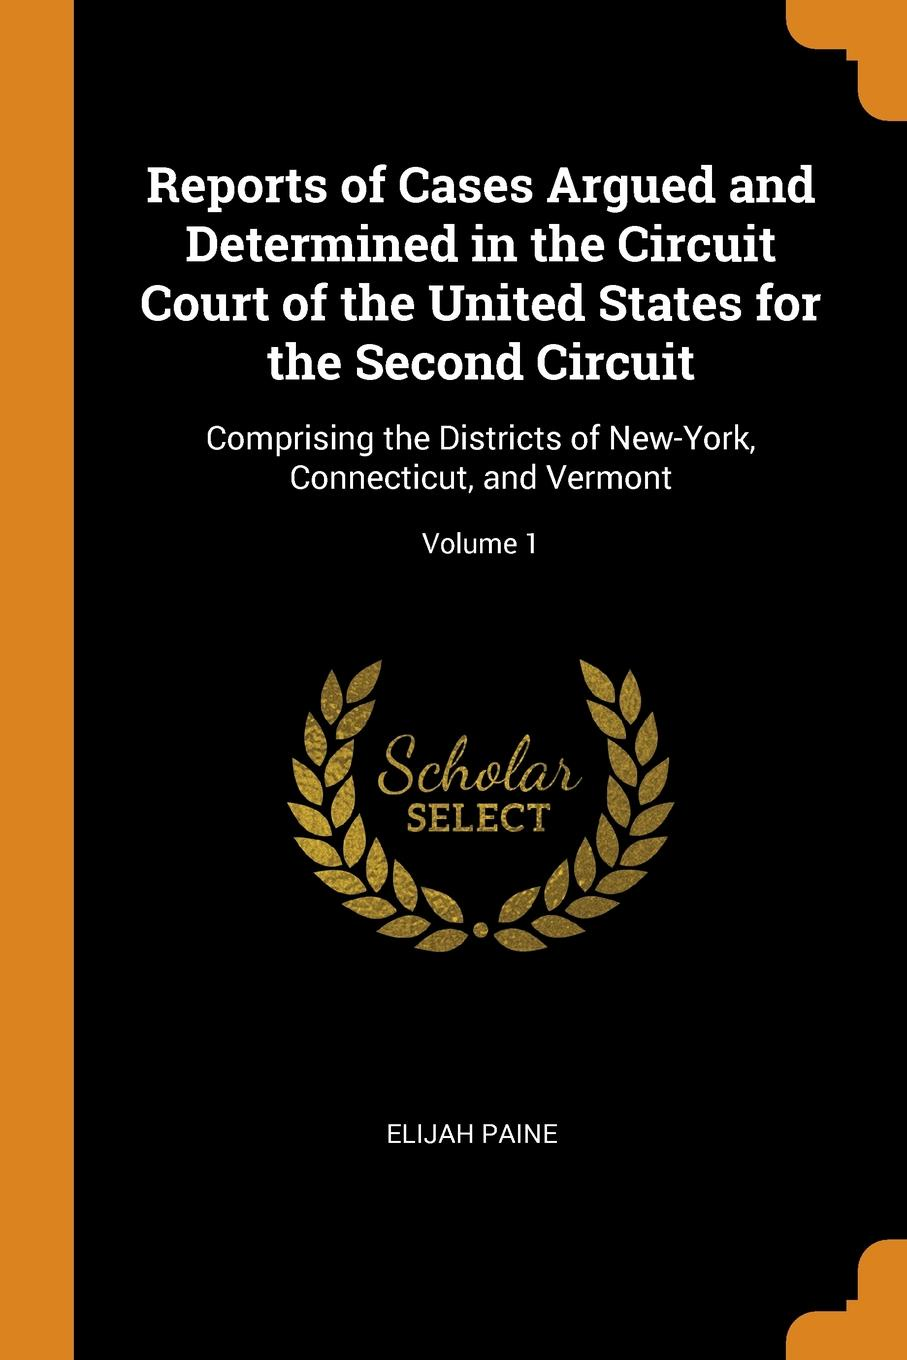 Reports of Cases Argued and Determined in the Circuit Court of the United States for the Second Circuit. Comprising the Districts of New-York, Connecticut, and Vermont; Volume 1. Elijah Paine